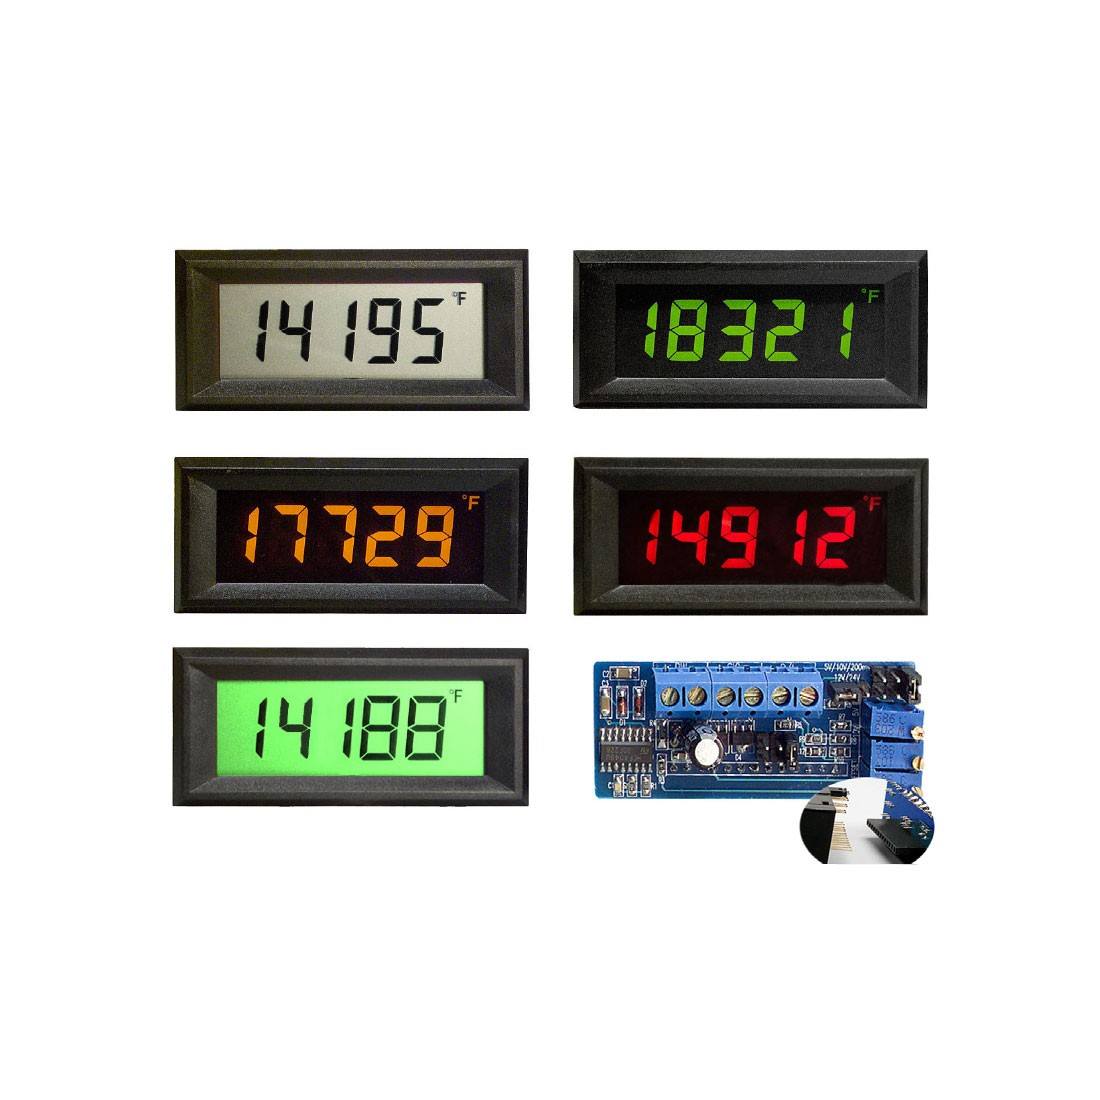 HVPI-4-XEC Series Voltage Powered LED Digital Panel Meter